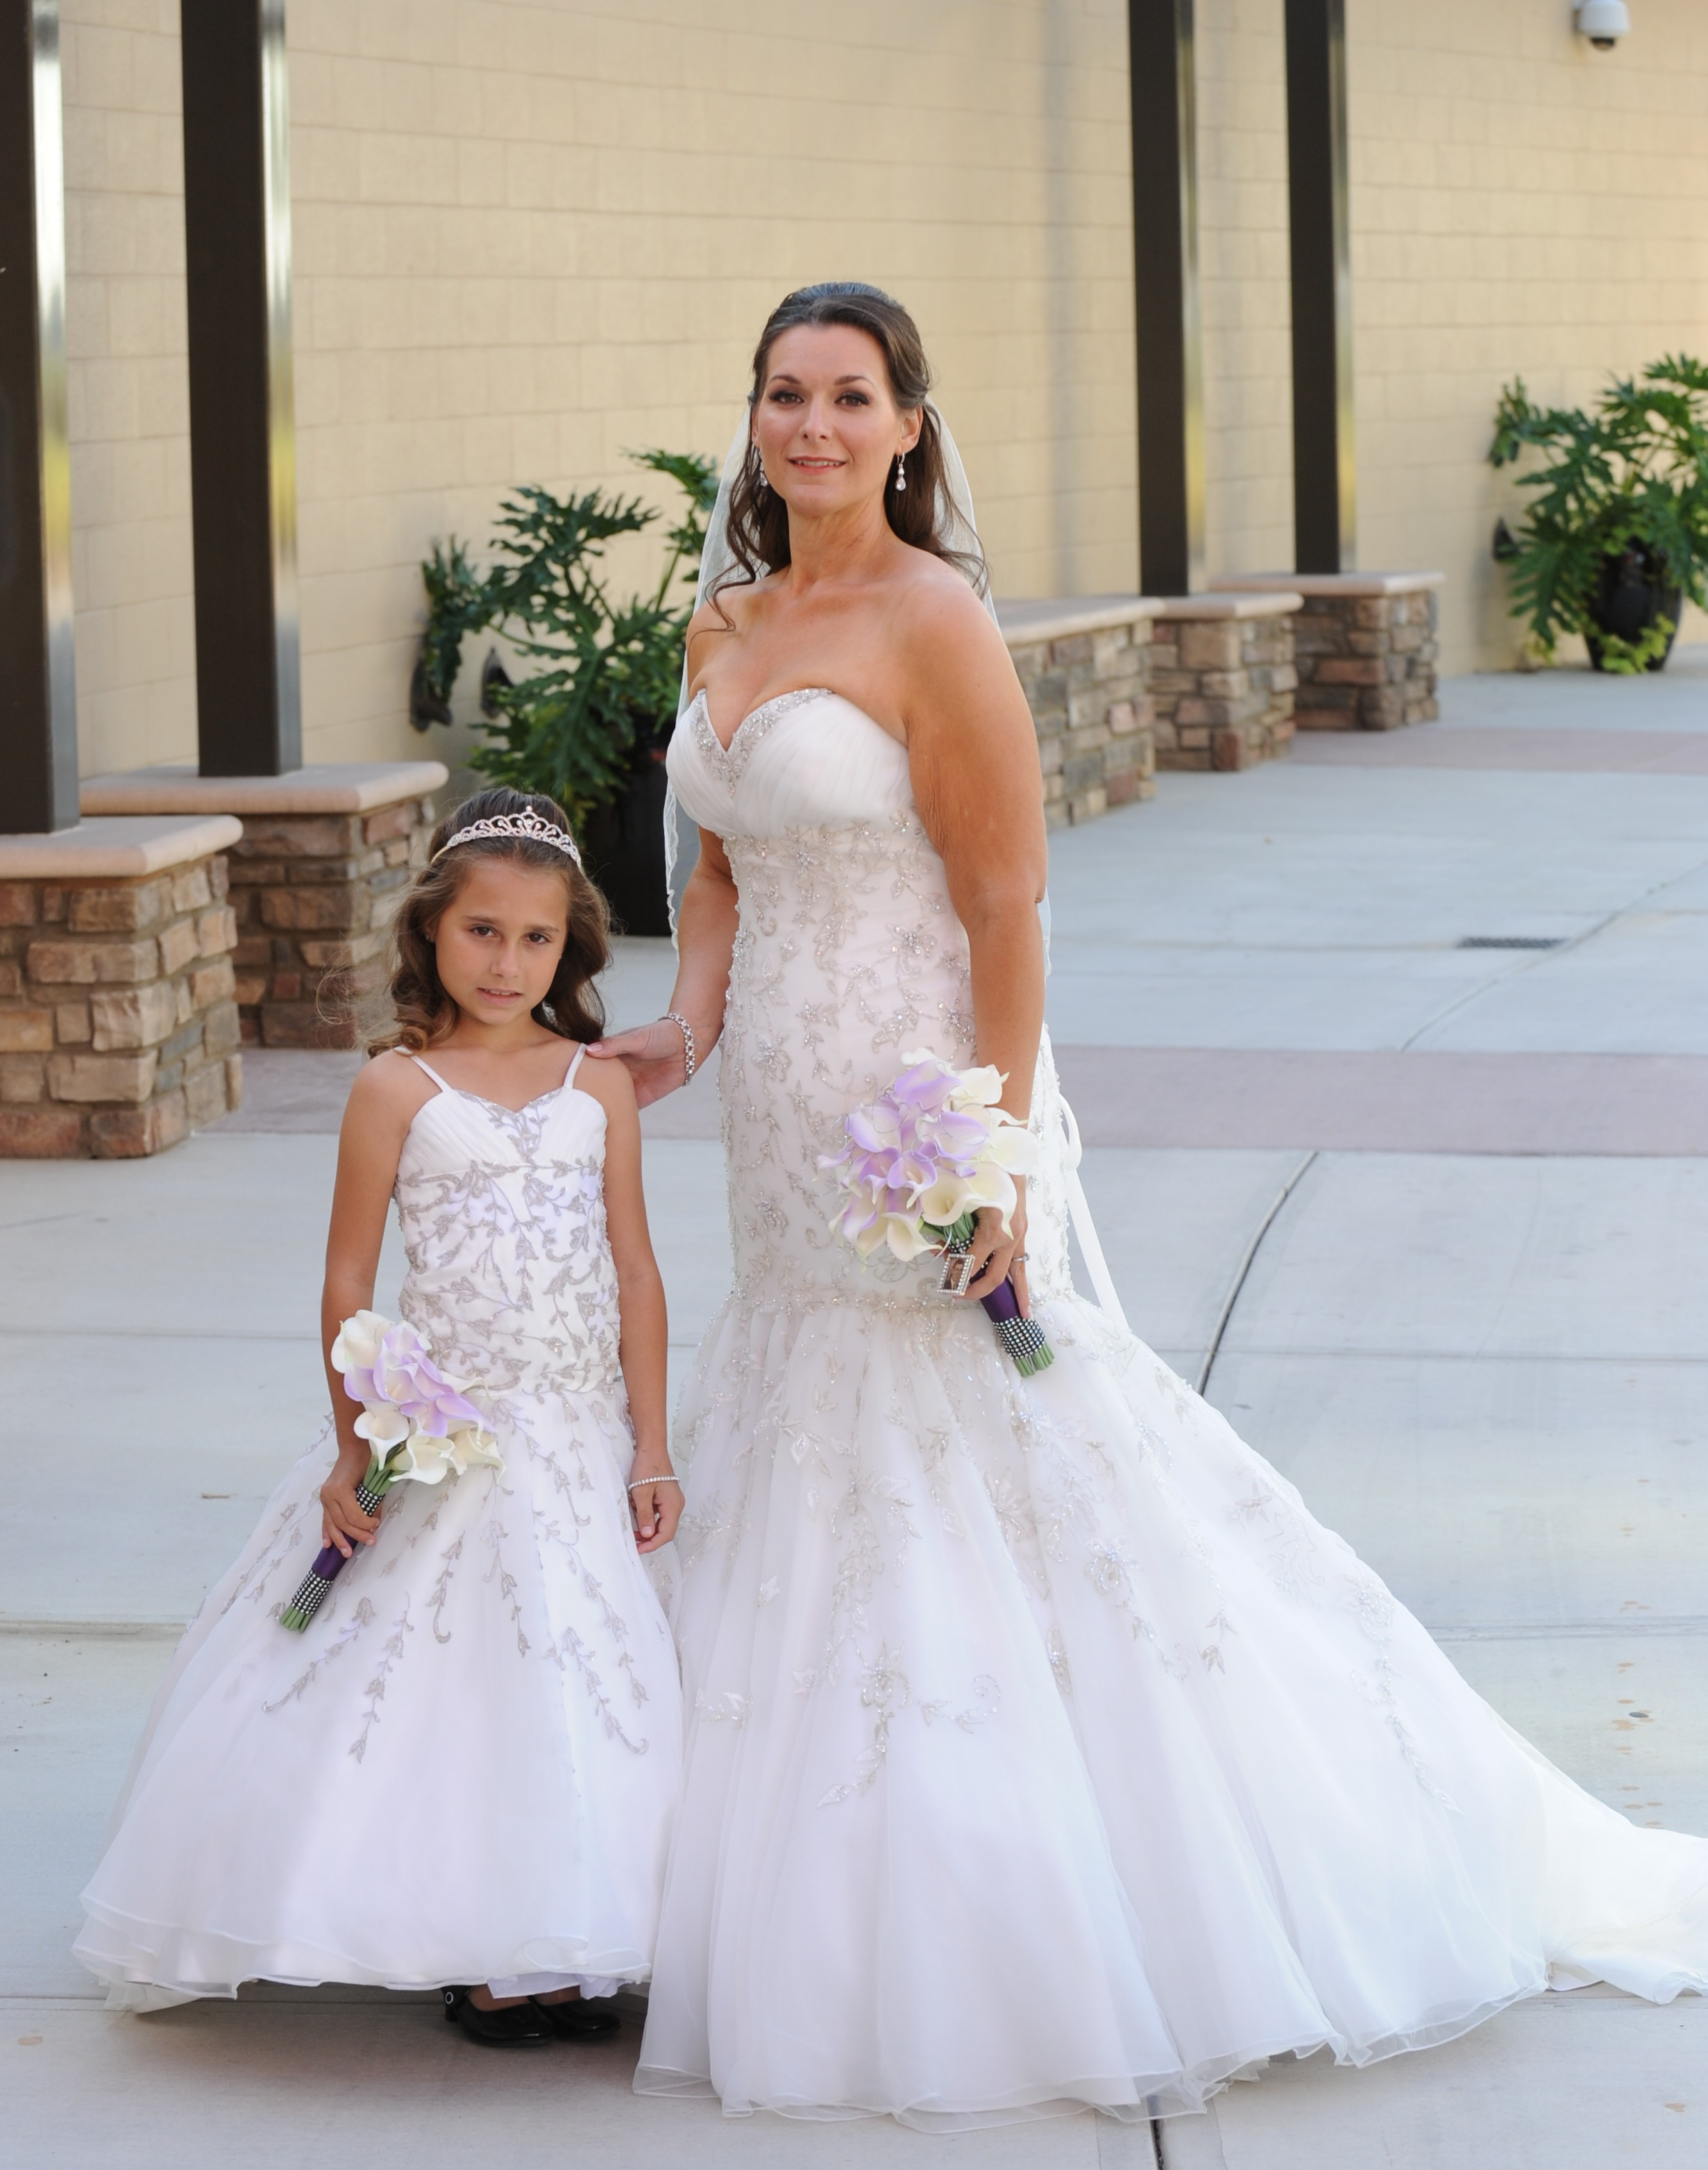 mother and daughter matching wedding dresses